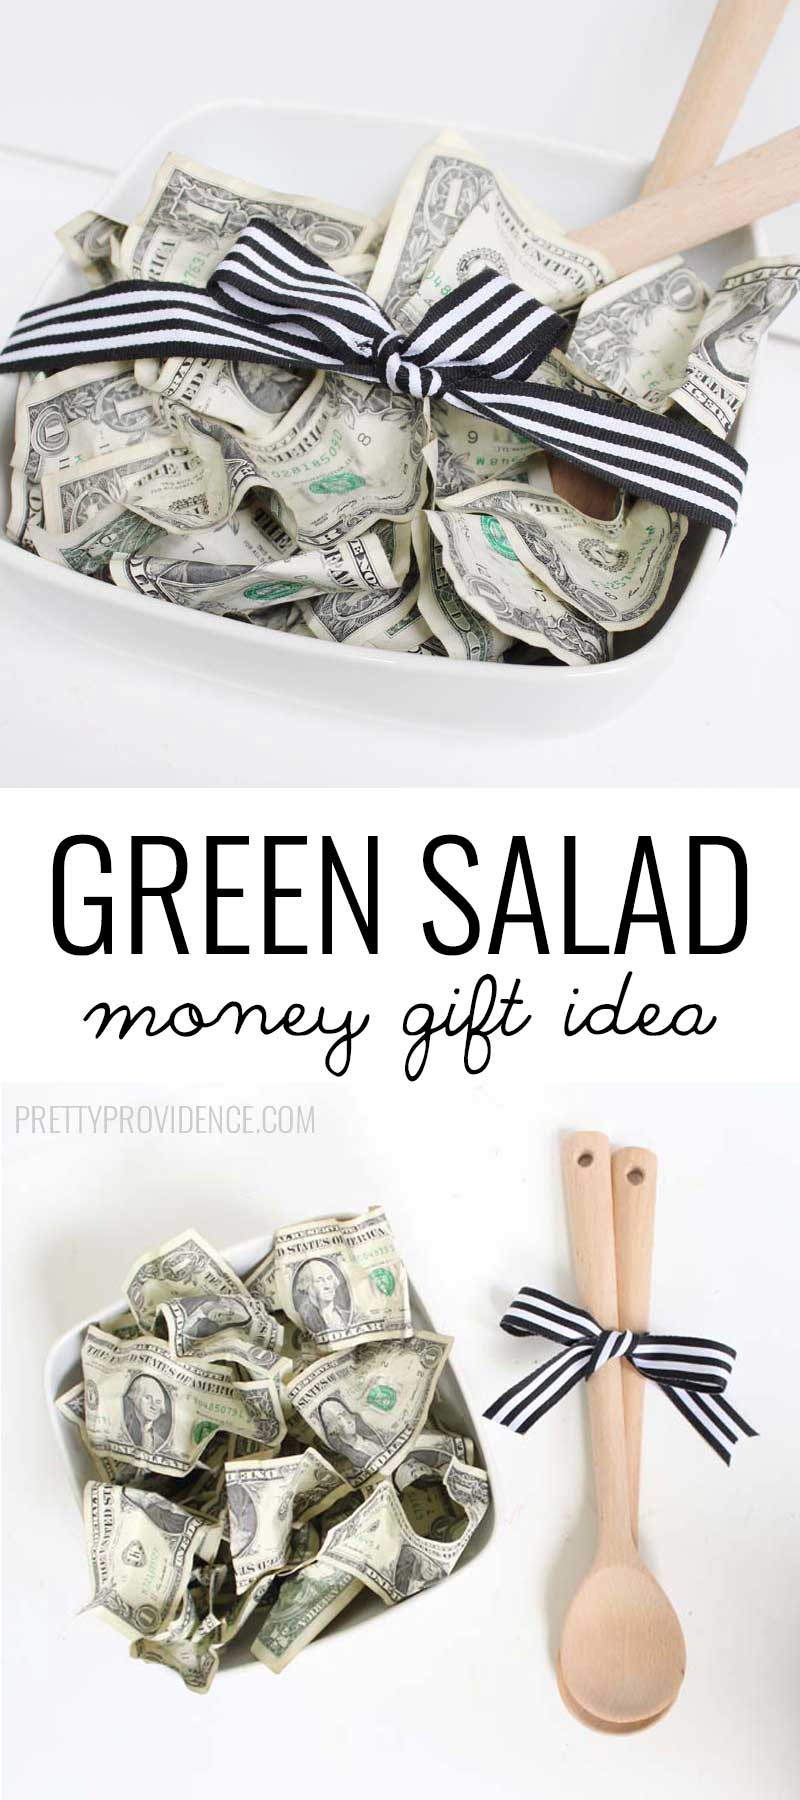 Best ideas about Wedding Gift Money Ideas . Save or Pin Green Salad Money Gift Idea Pretty Providence Now.